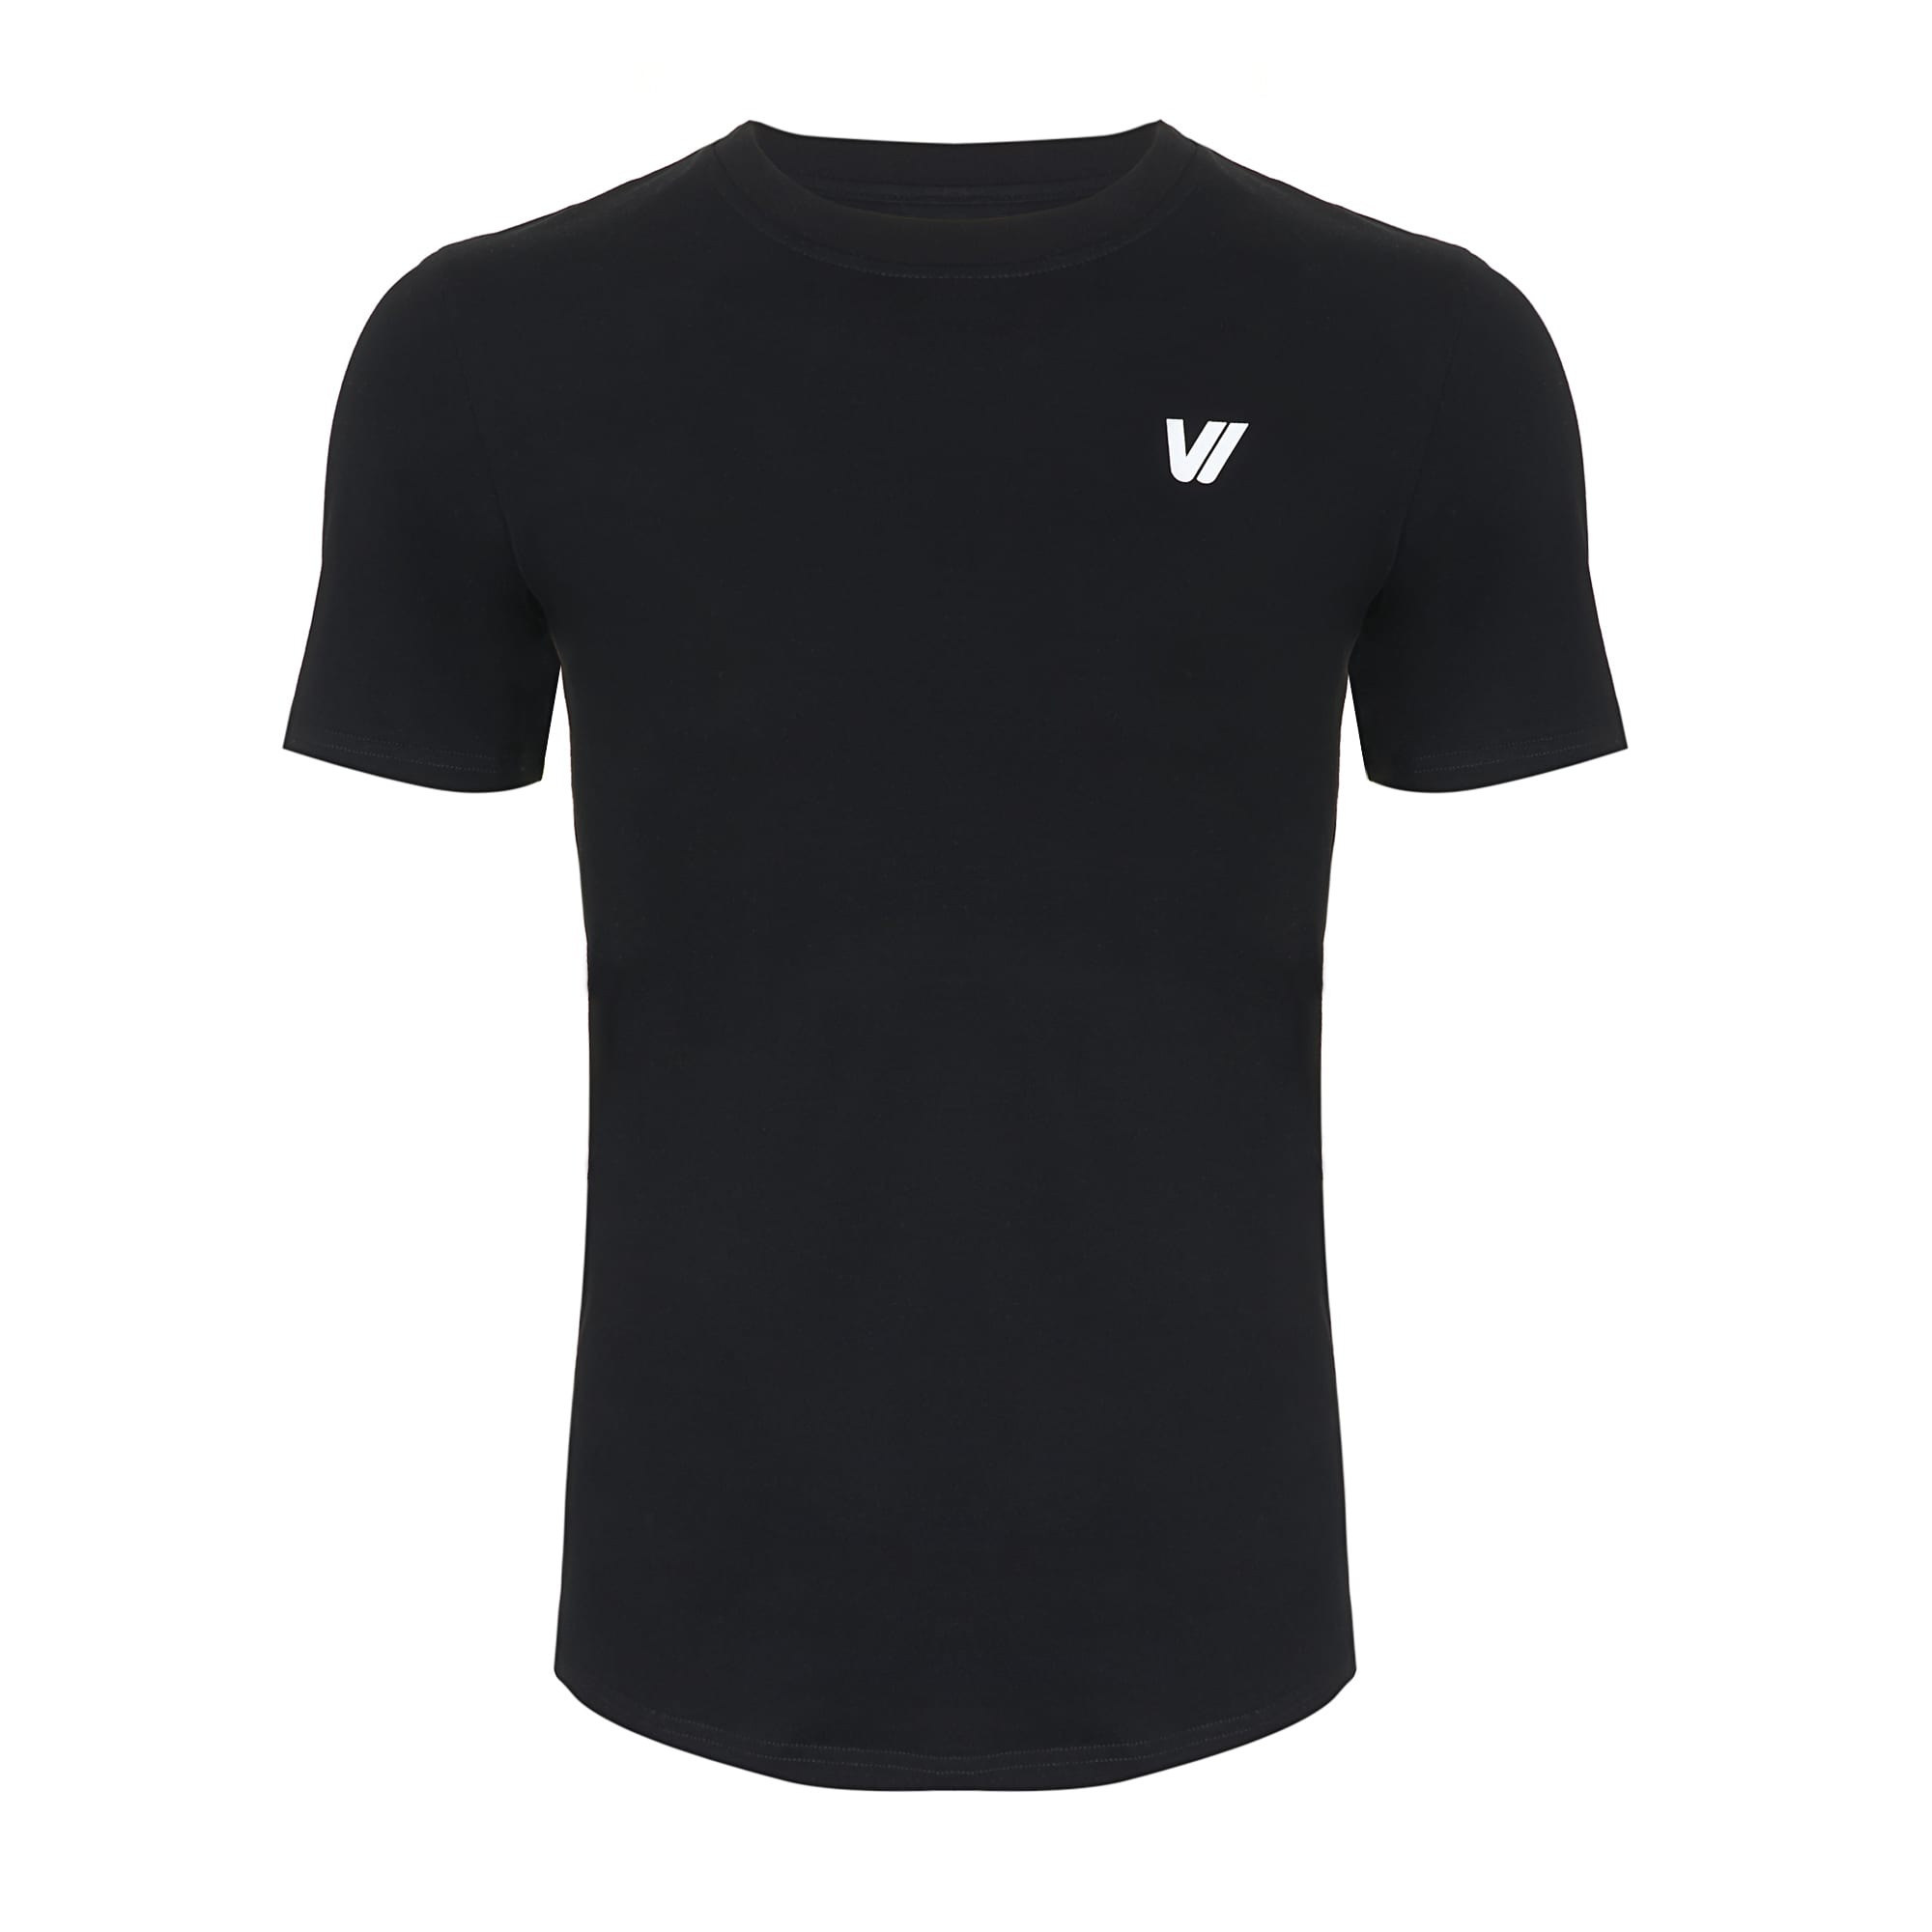 Unisex Running Top - Black